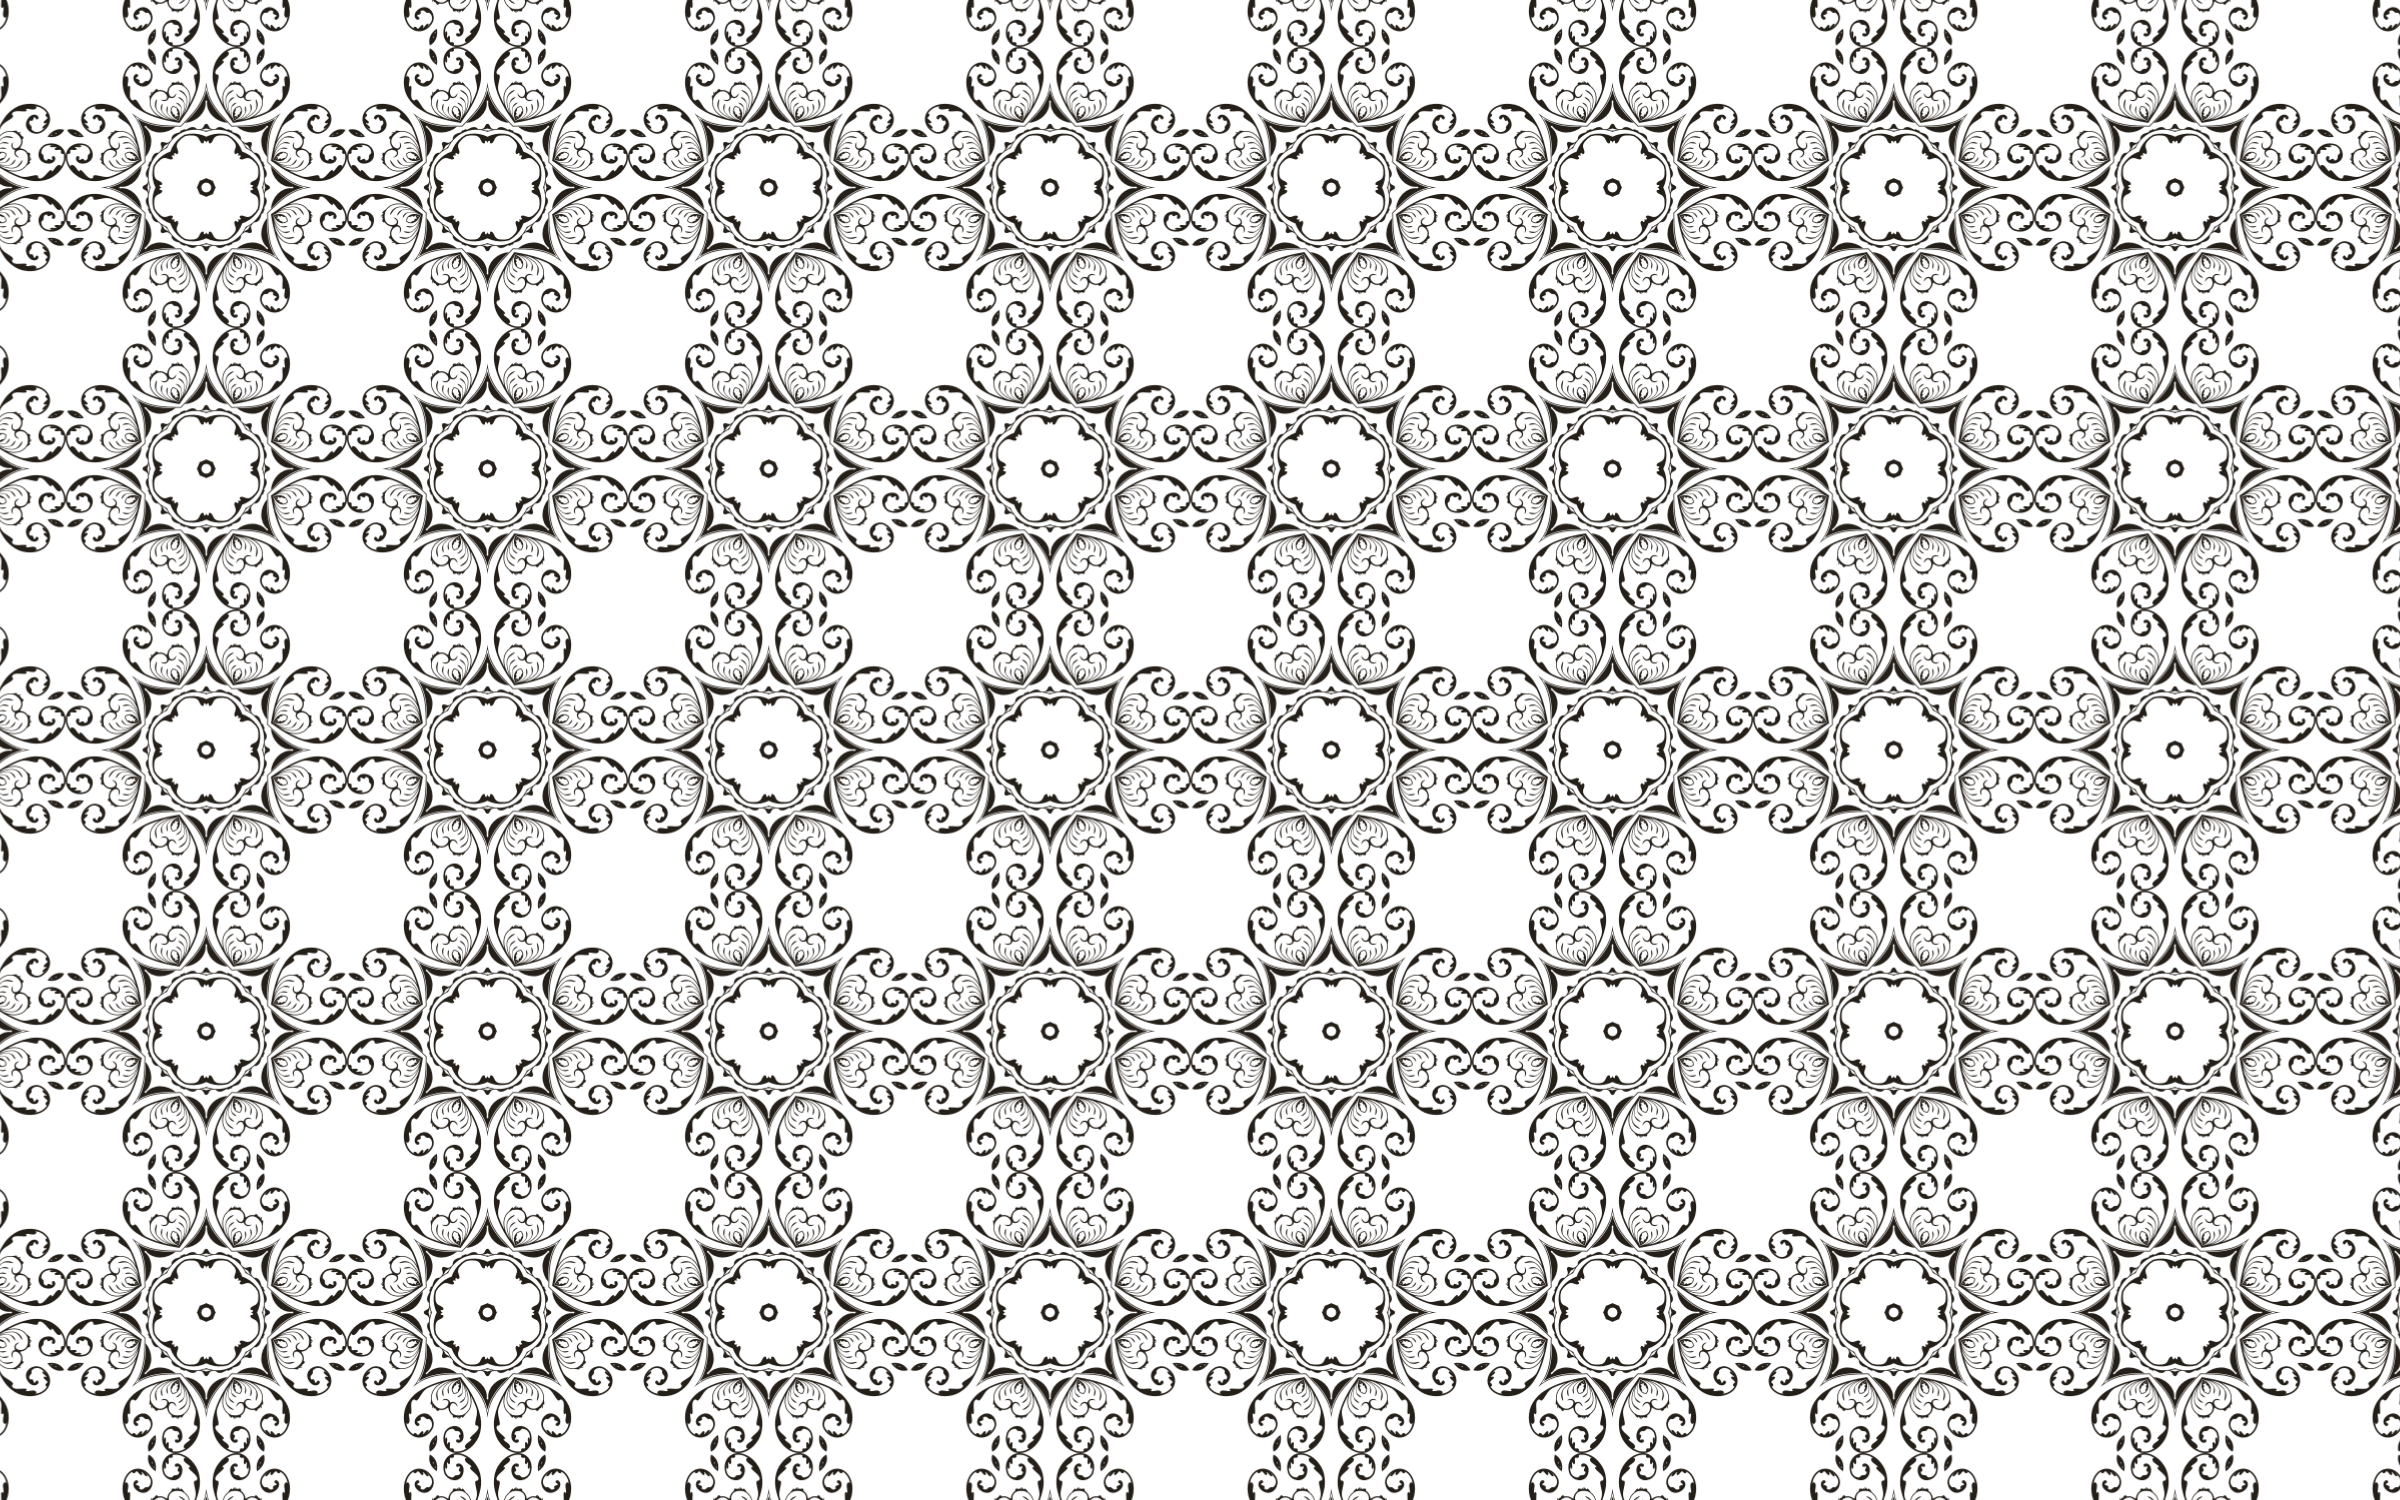 Floral designs patterns png. Seamless flourish design pattern